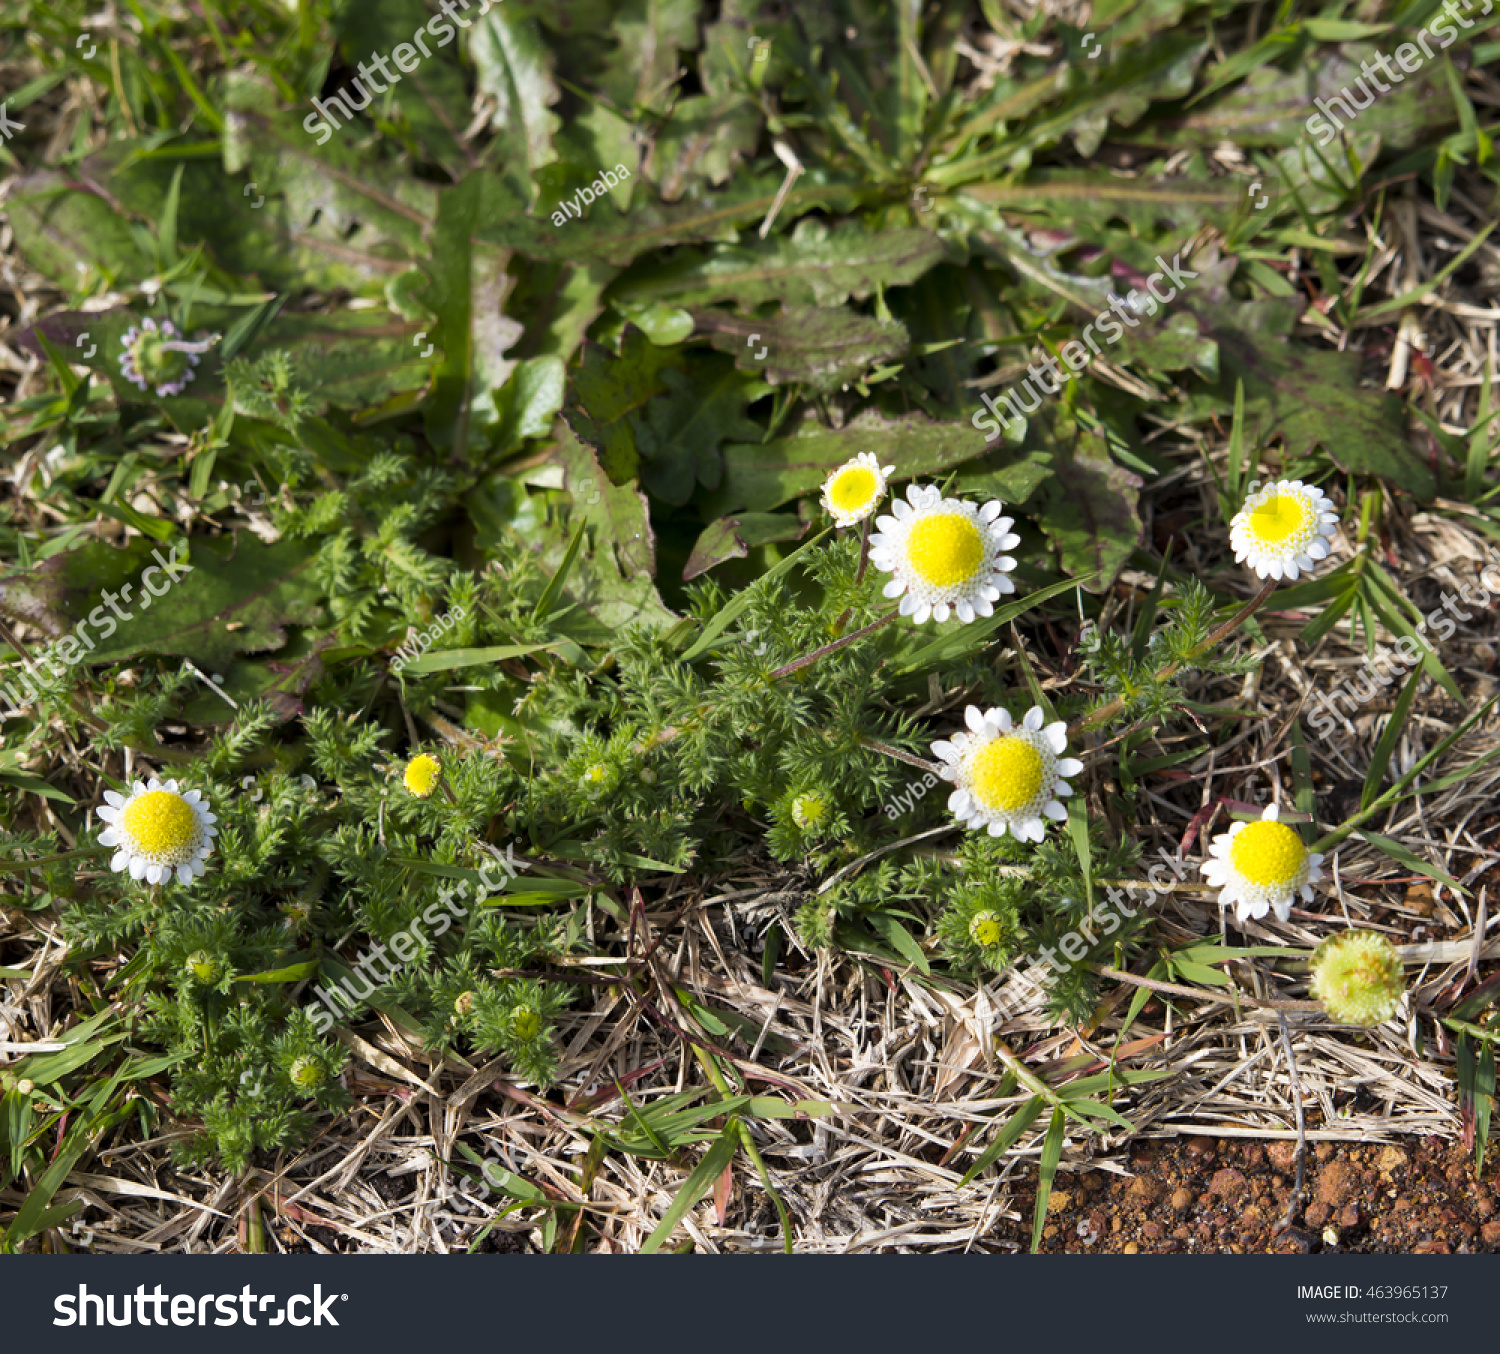 Royalty free tiny cotula turbinata funnel weed 463965137 stock tiny cotula turbinata funnel weed flowers in winter spring with feathery divided leaves white flower heads with small white ray florets with yellow mightylinksfo